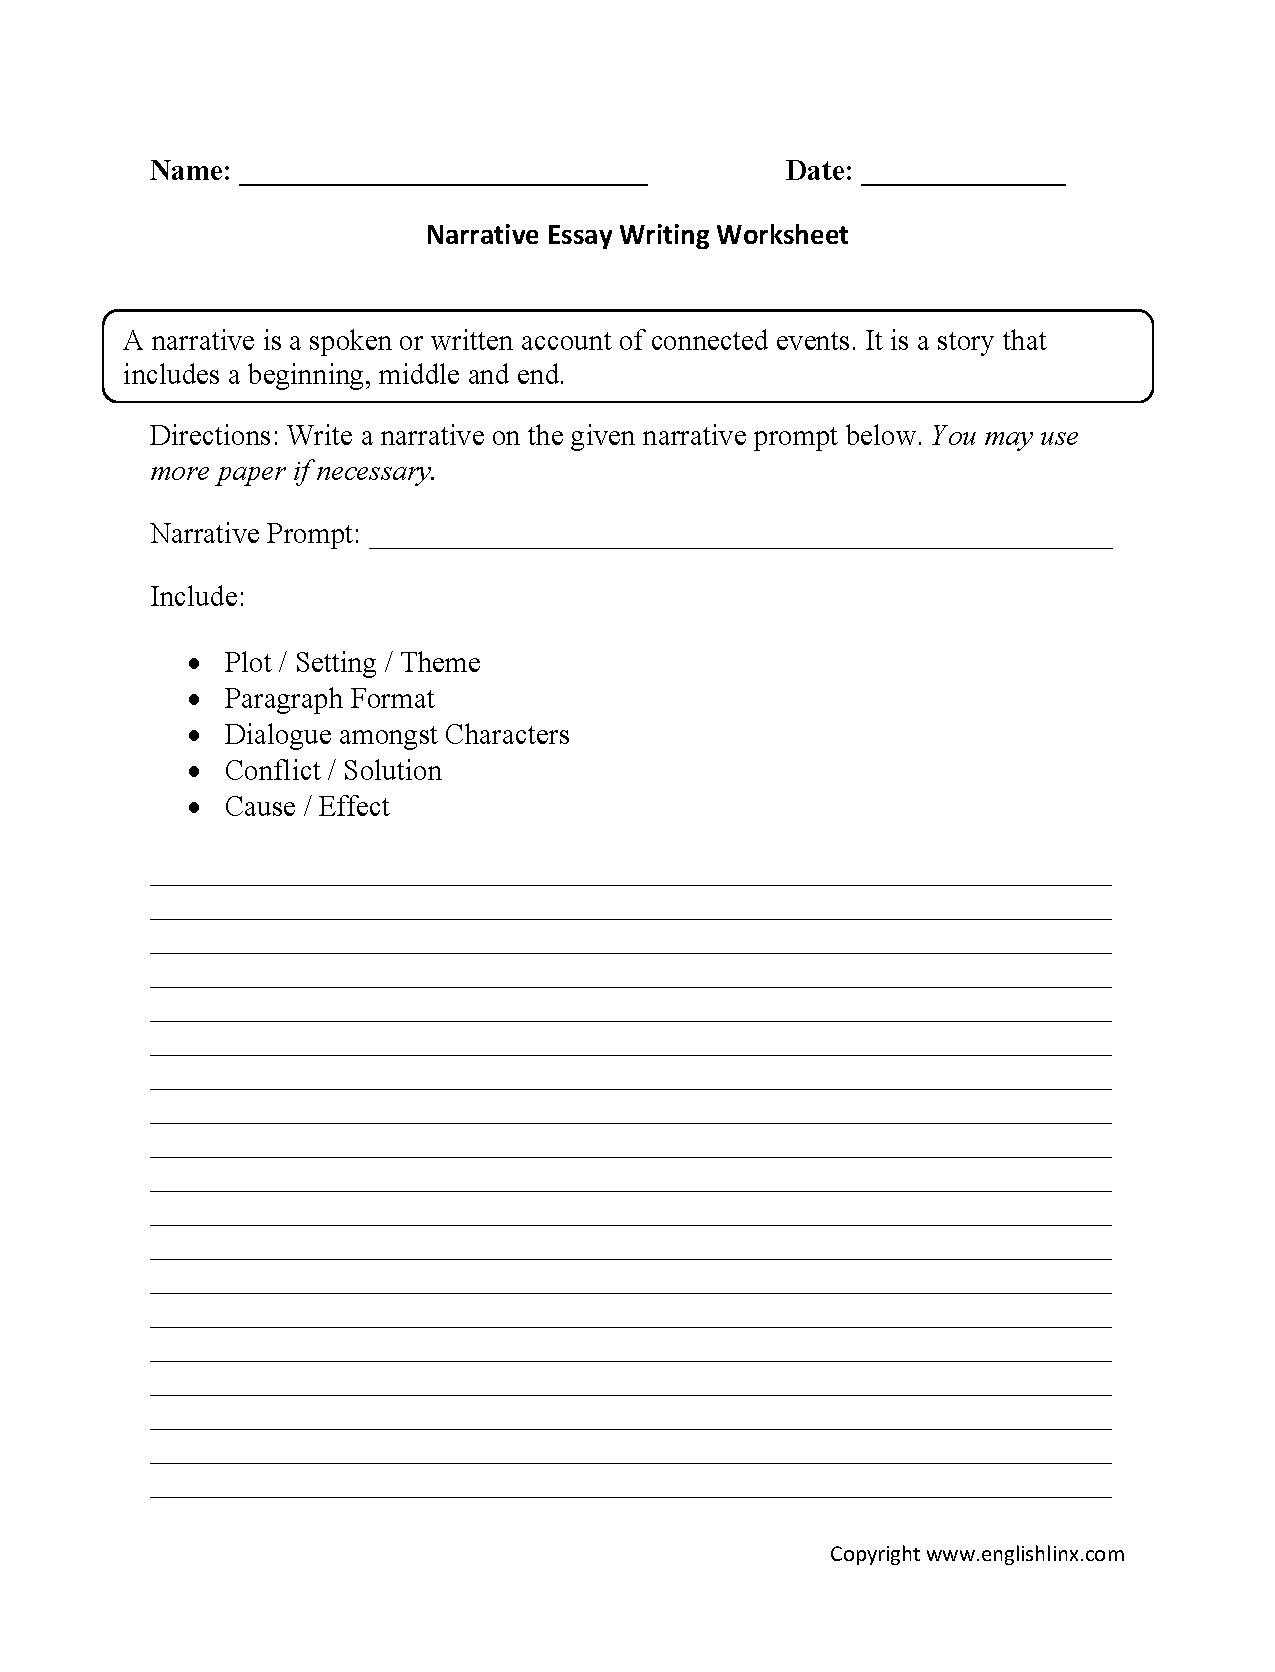 essay structure worksheets Essay outline worksheet author: brian davis created date: 2/18/2010 12:40:15 am.